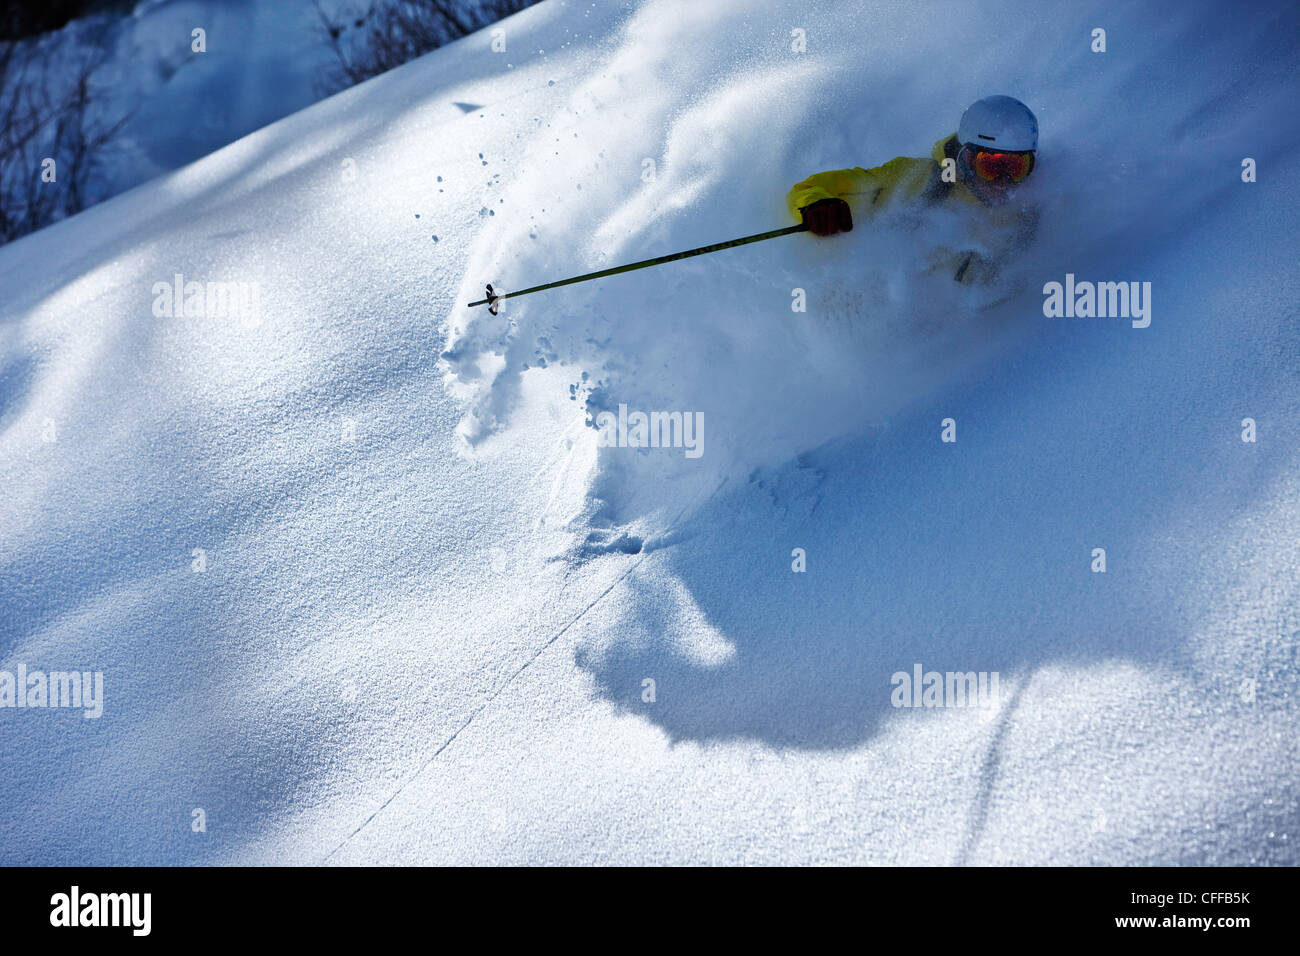 A athletic skier rips fresh powder turns on a sunny day in Colorado. - Stock Image